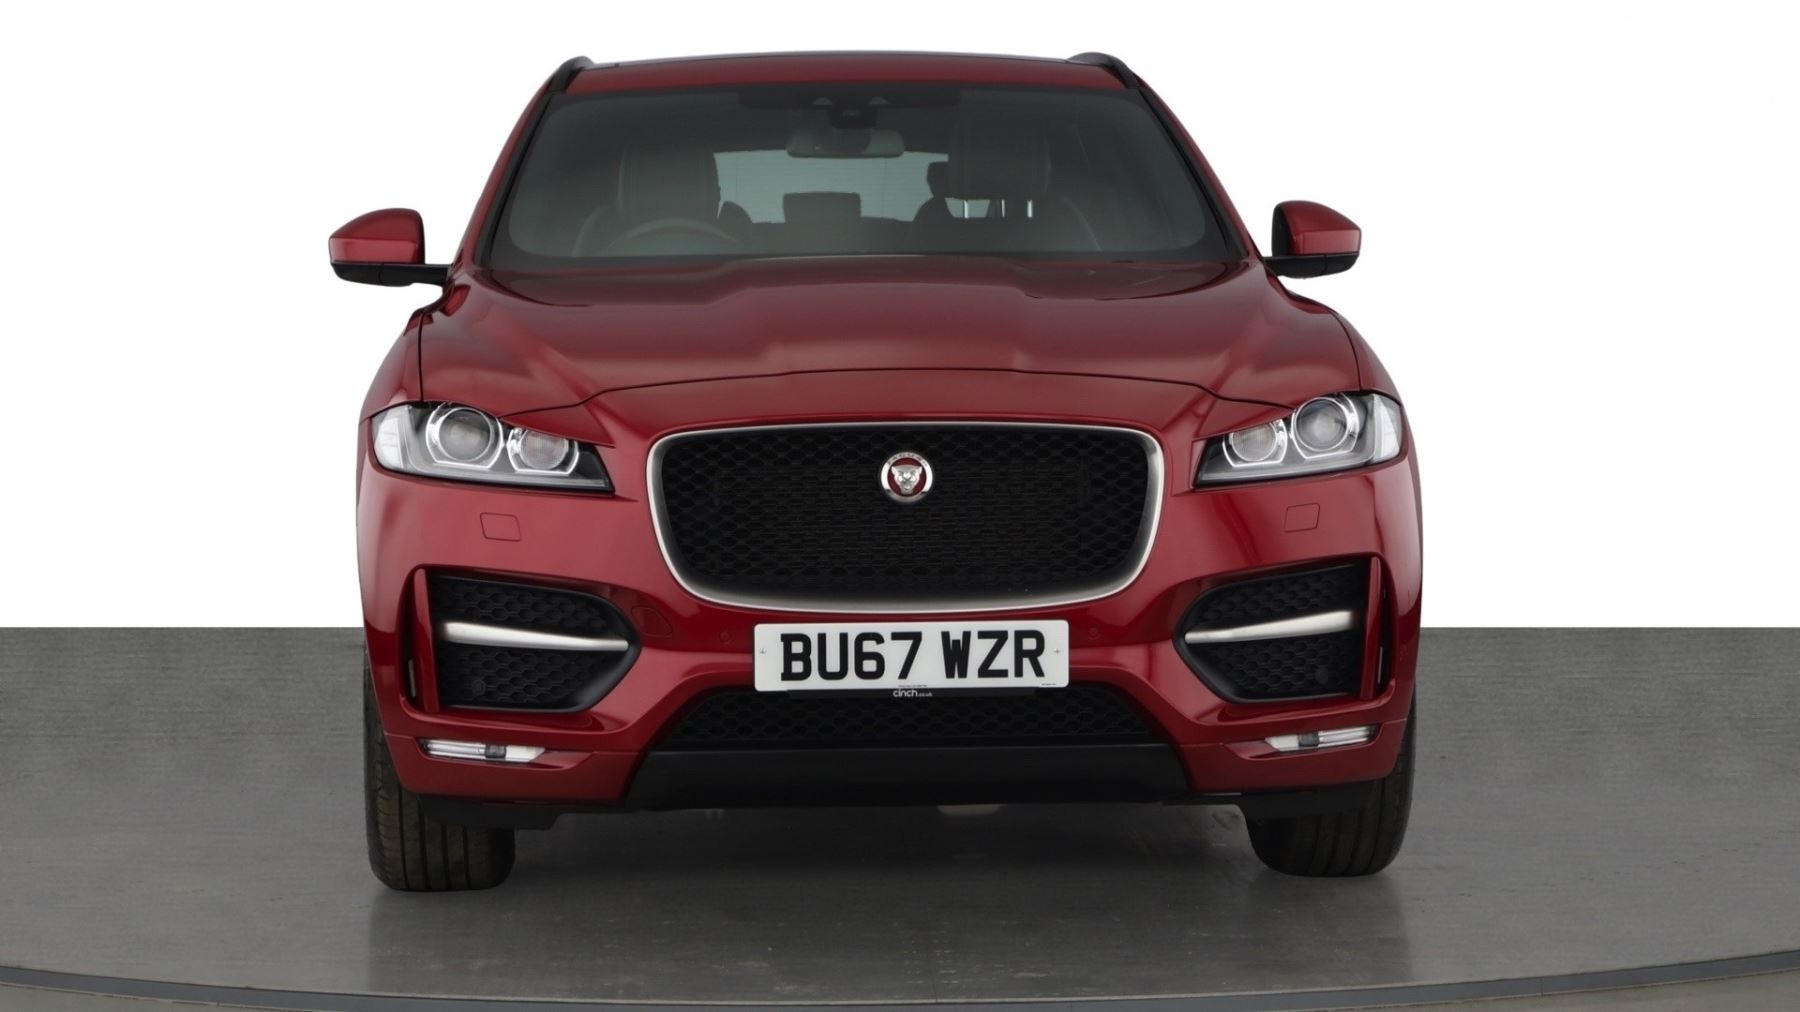 Jaguar F-PACE 2.0d R-Sport AWD - Sliding Panoramic Roof - Rear View Camera image 2